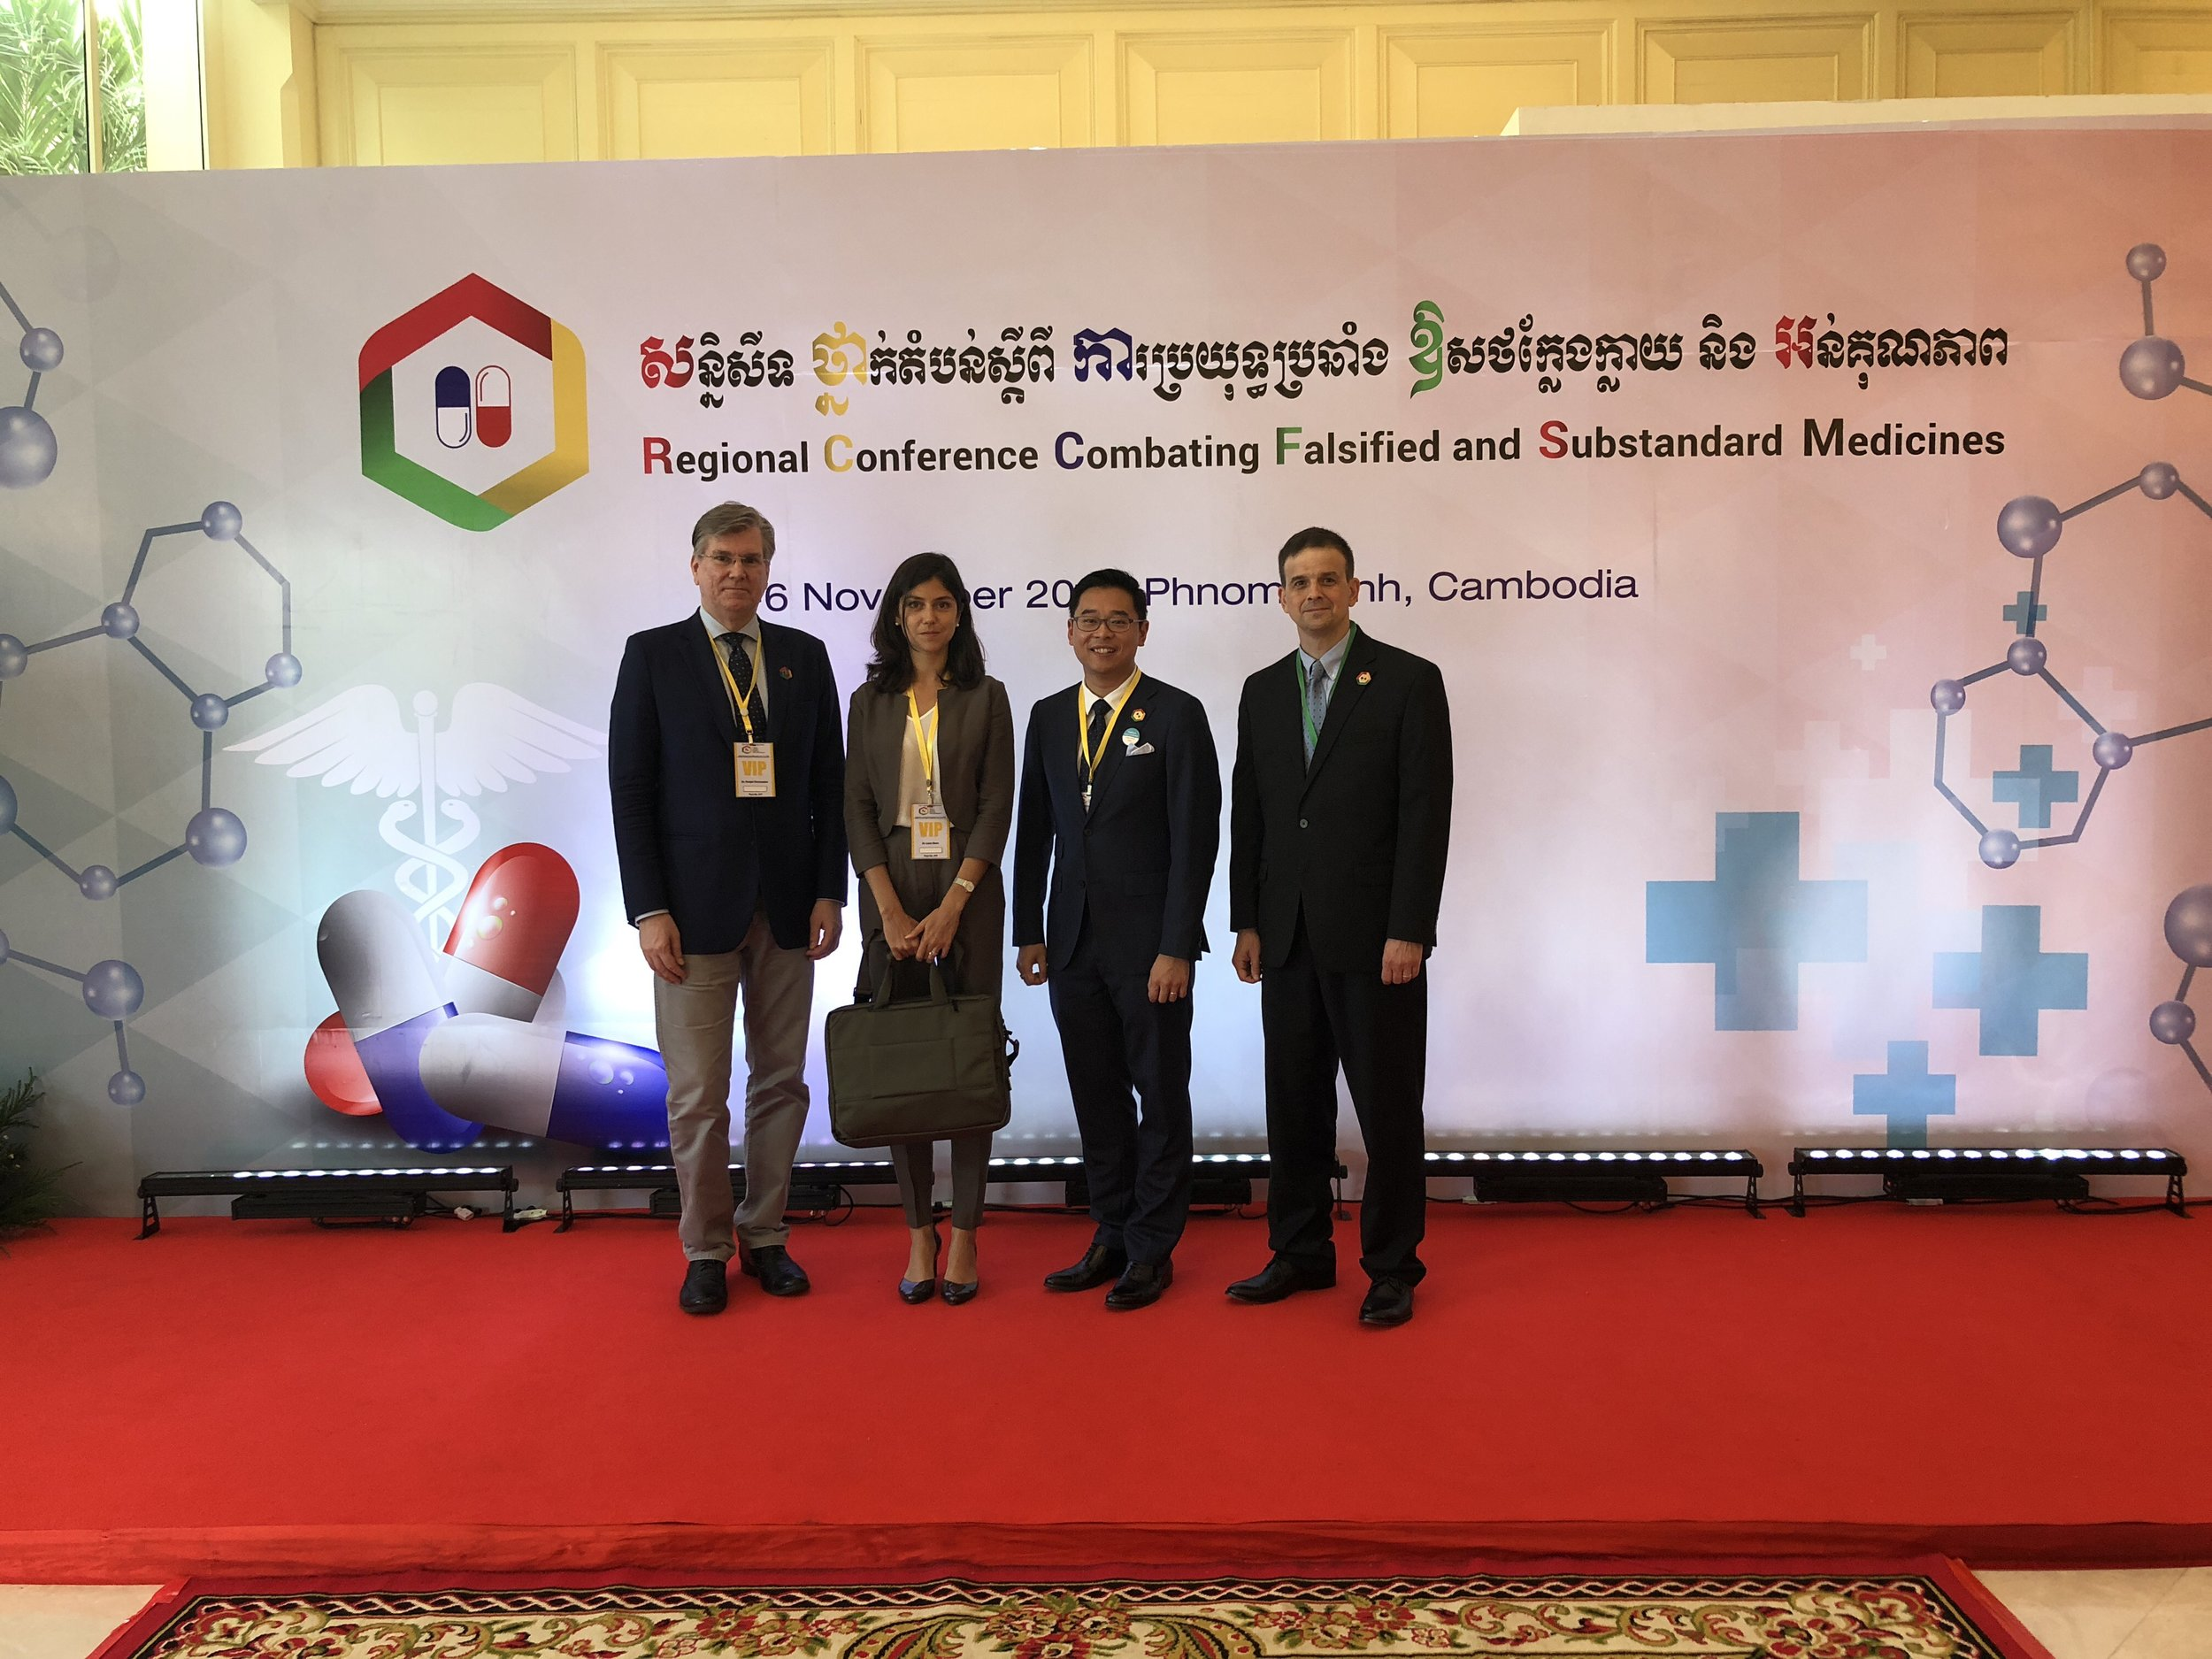 Regional Conference Combating Falsified and Substandard Medicines